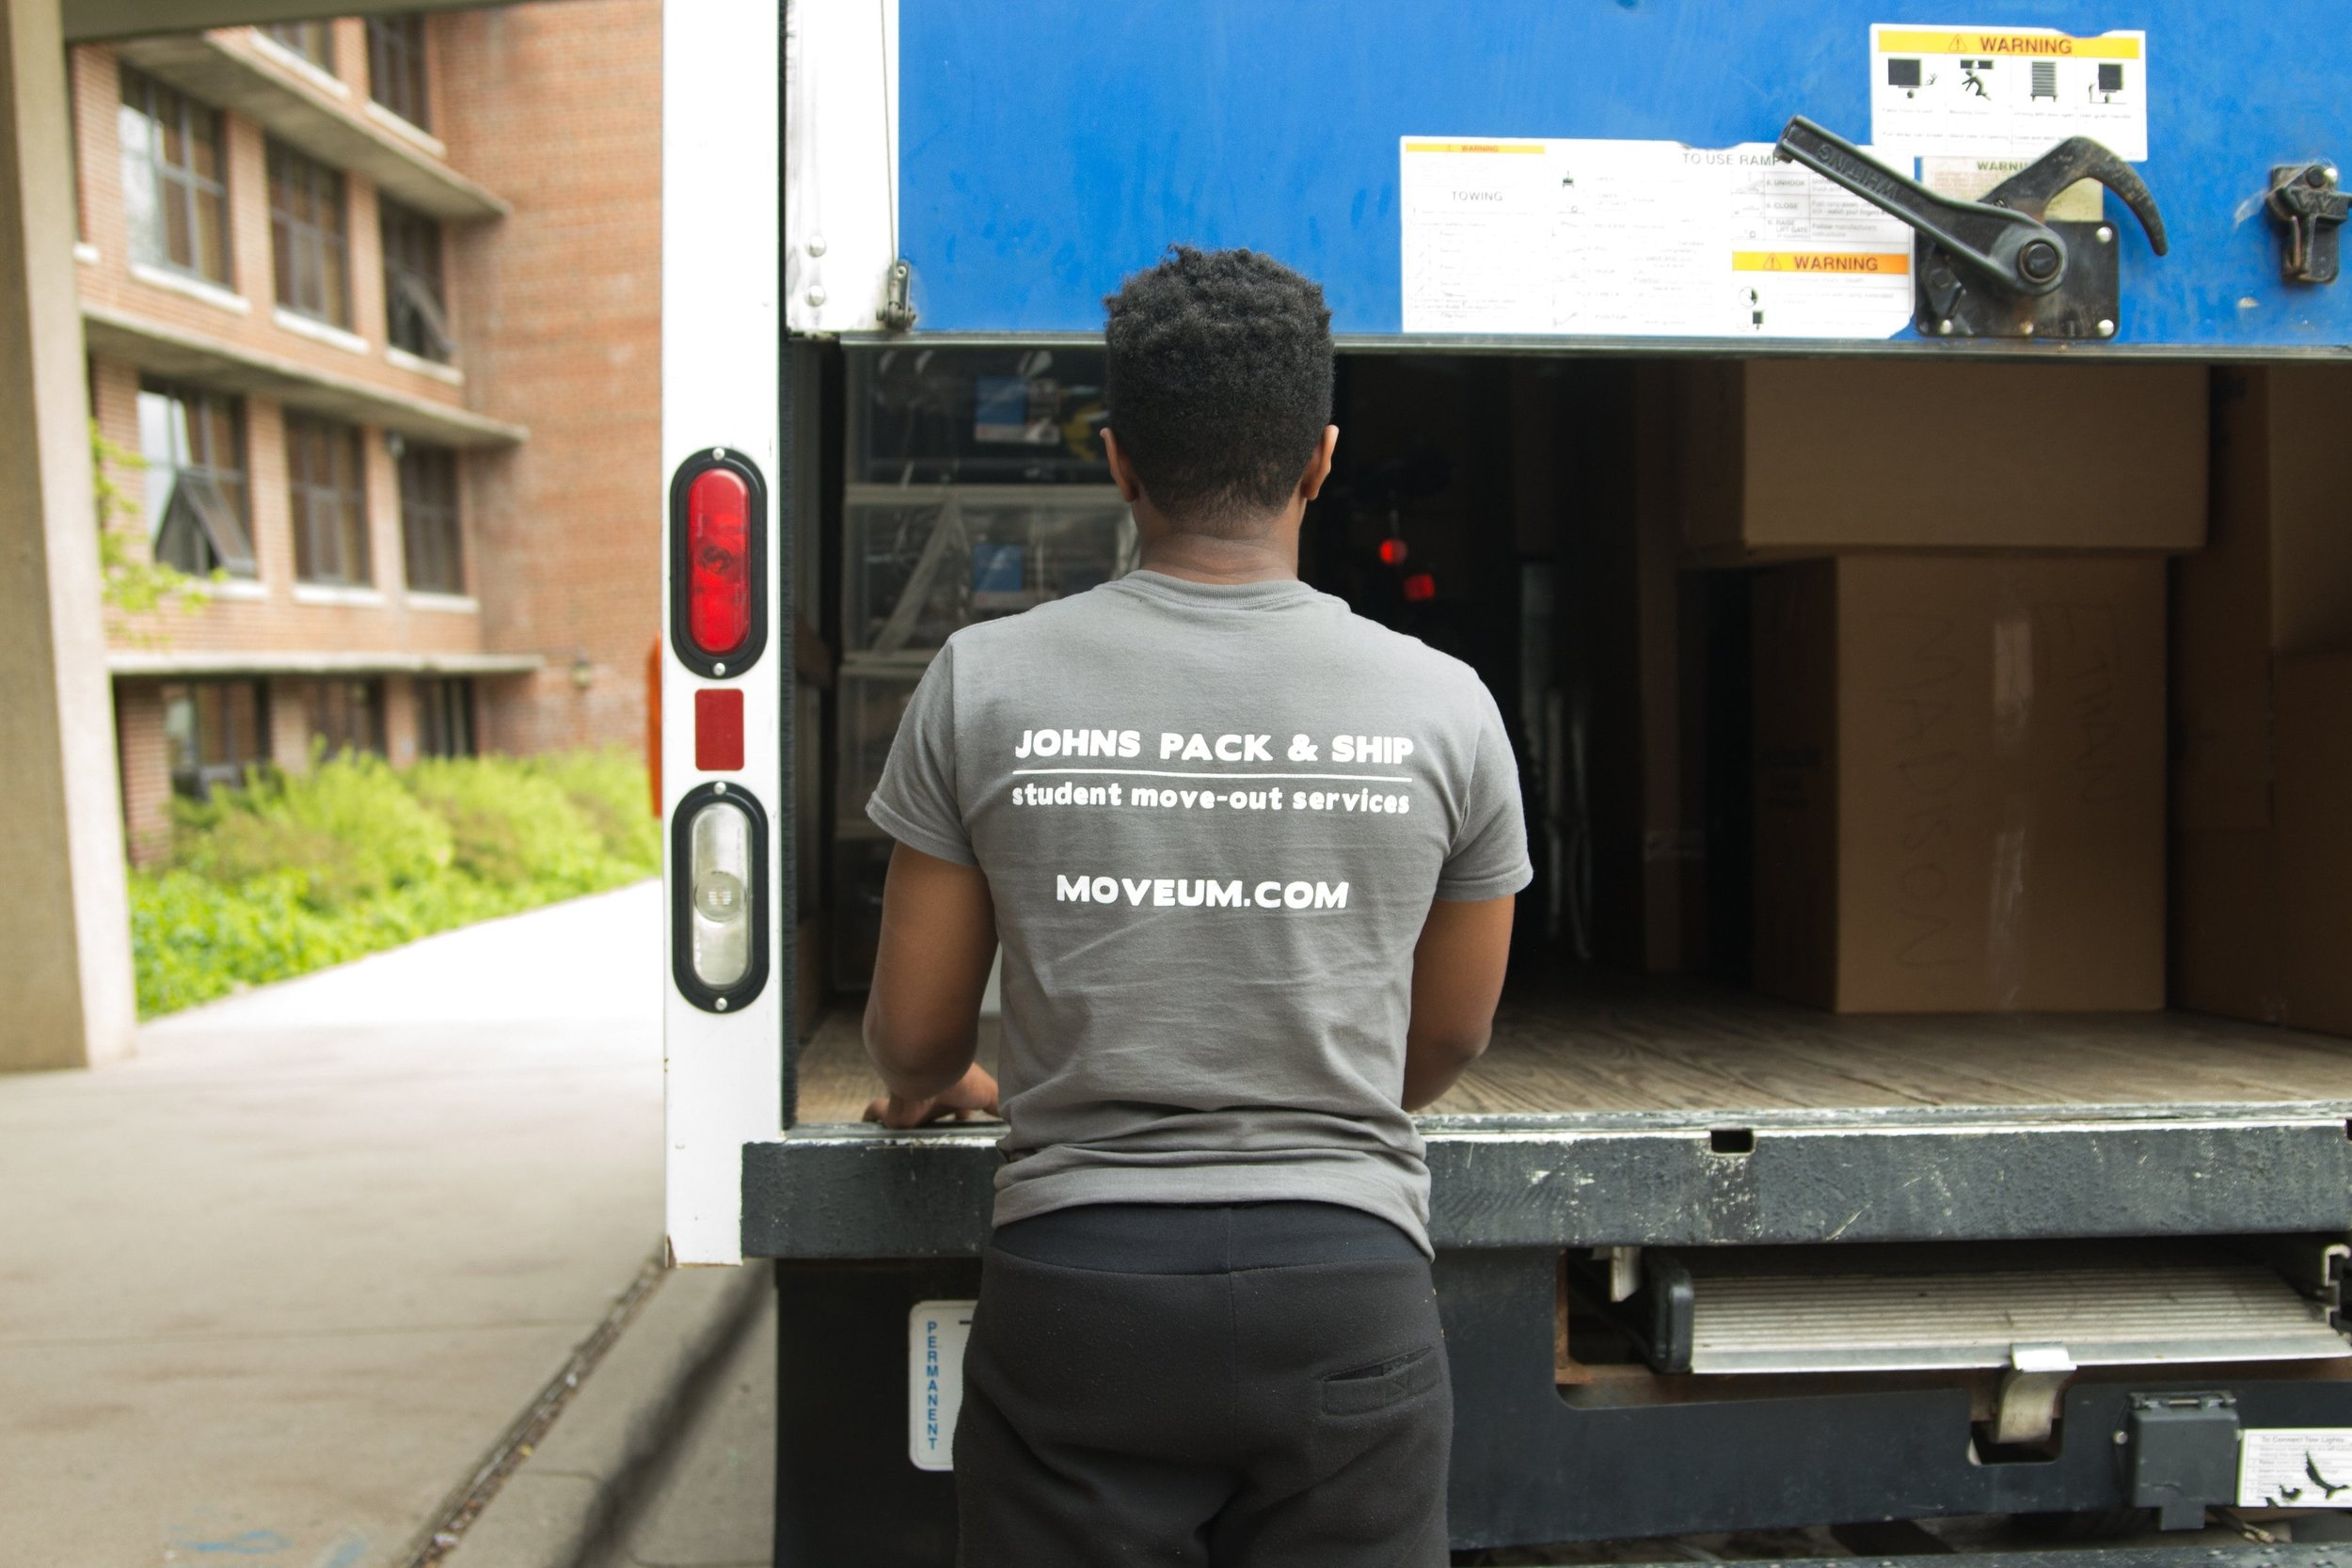 Moves - Two strong guys move students from one campus residence immediately to another.Just not during the peak weeks of fall move-in the 10 days before Labor Day or during spring move-out, the 10 days before graduation